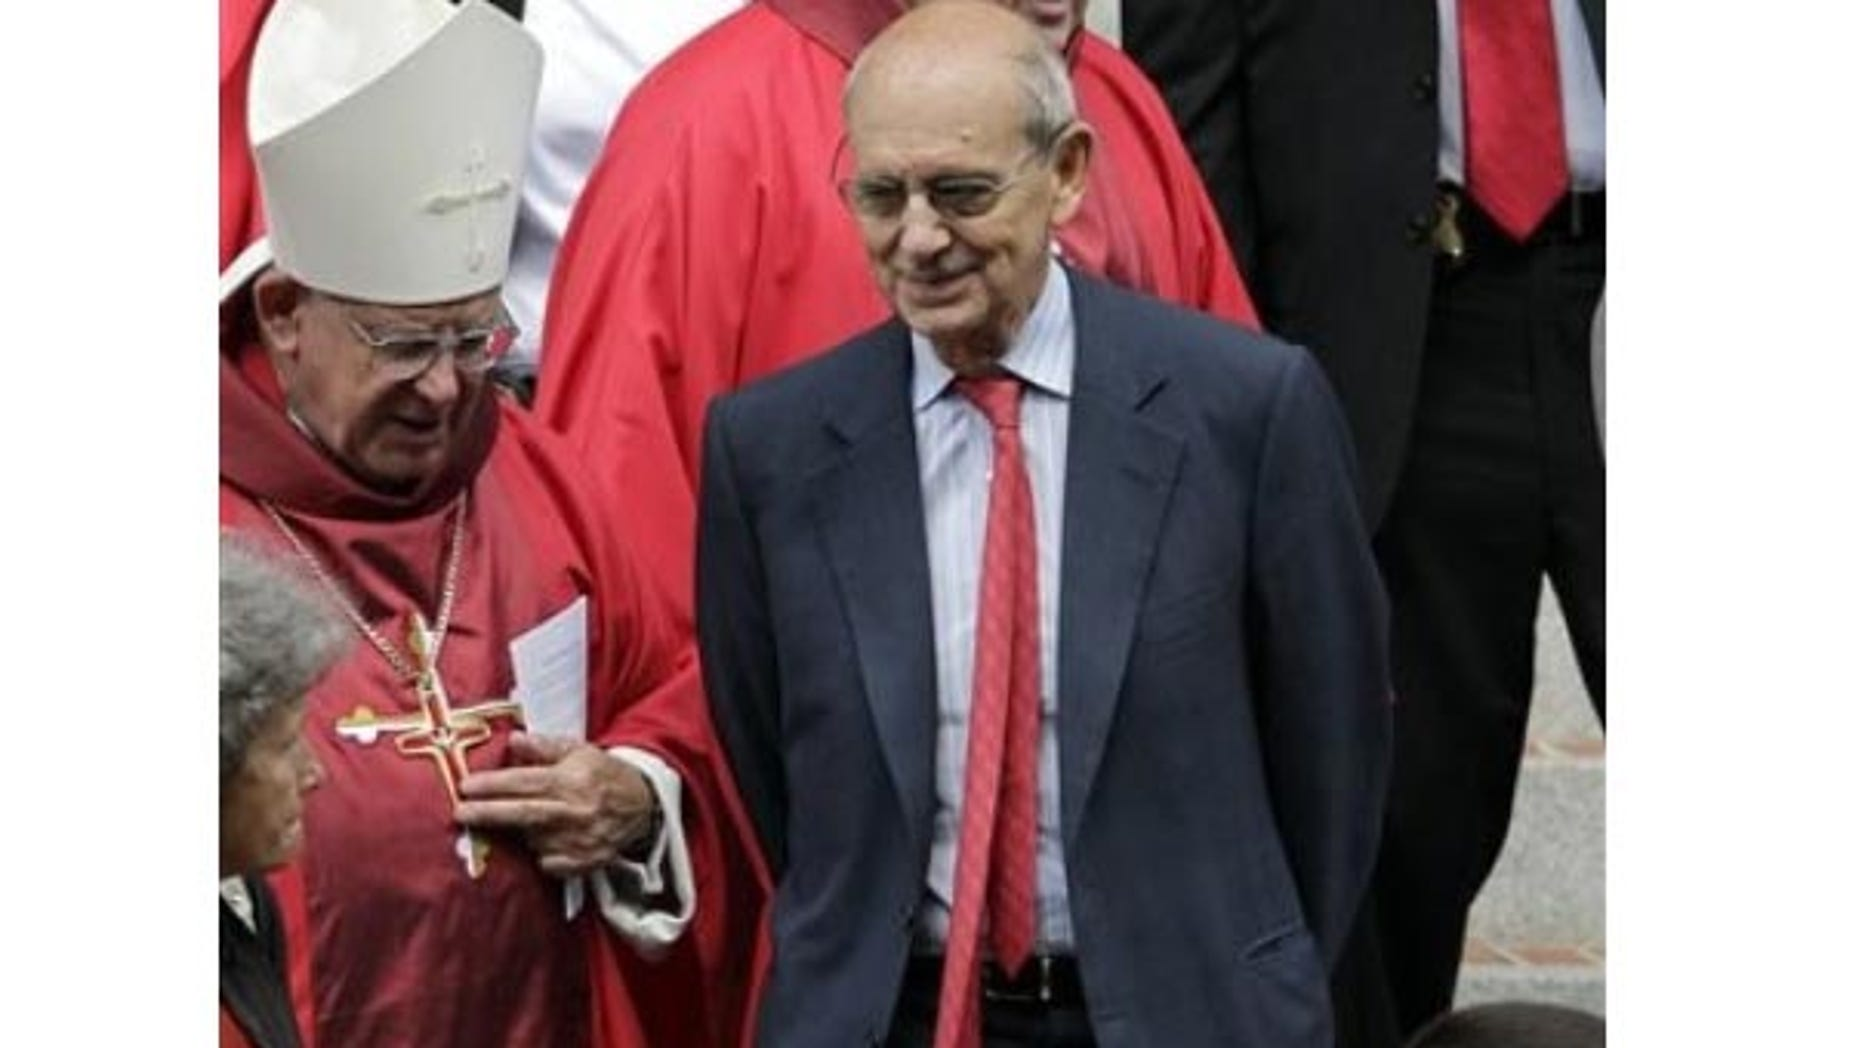 FILE: Supreme Court Justice Stephen Breyer leaves St. Matthew the Apostle's Cathedral on Oct. 3 following a Red Mass, a special Mass celebrated annually before the opening session of the Supreme Court, in Washington.